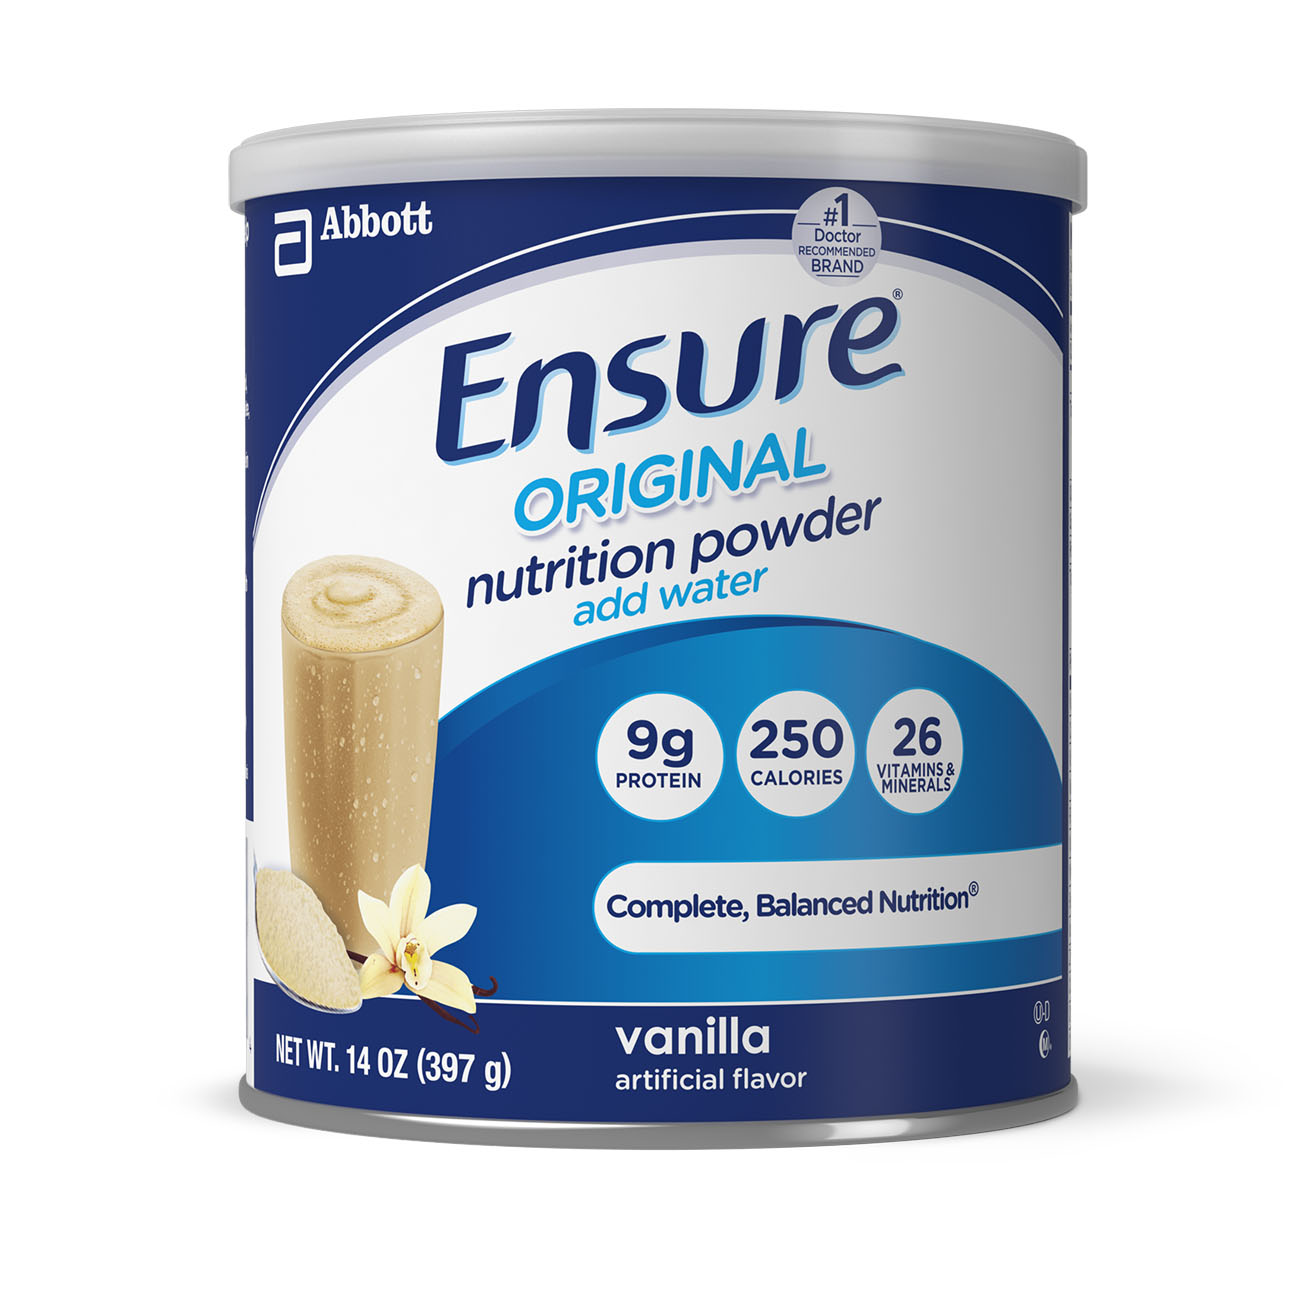 Ensure Original Nutrition Powder, Vanilla, 14 oz